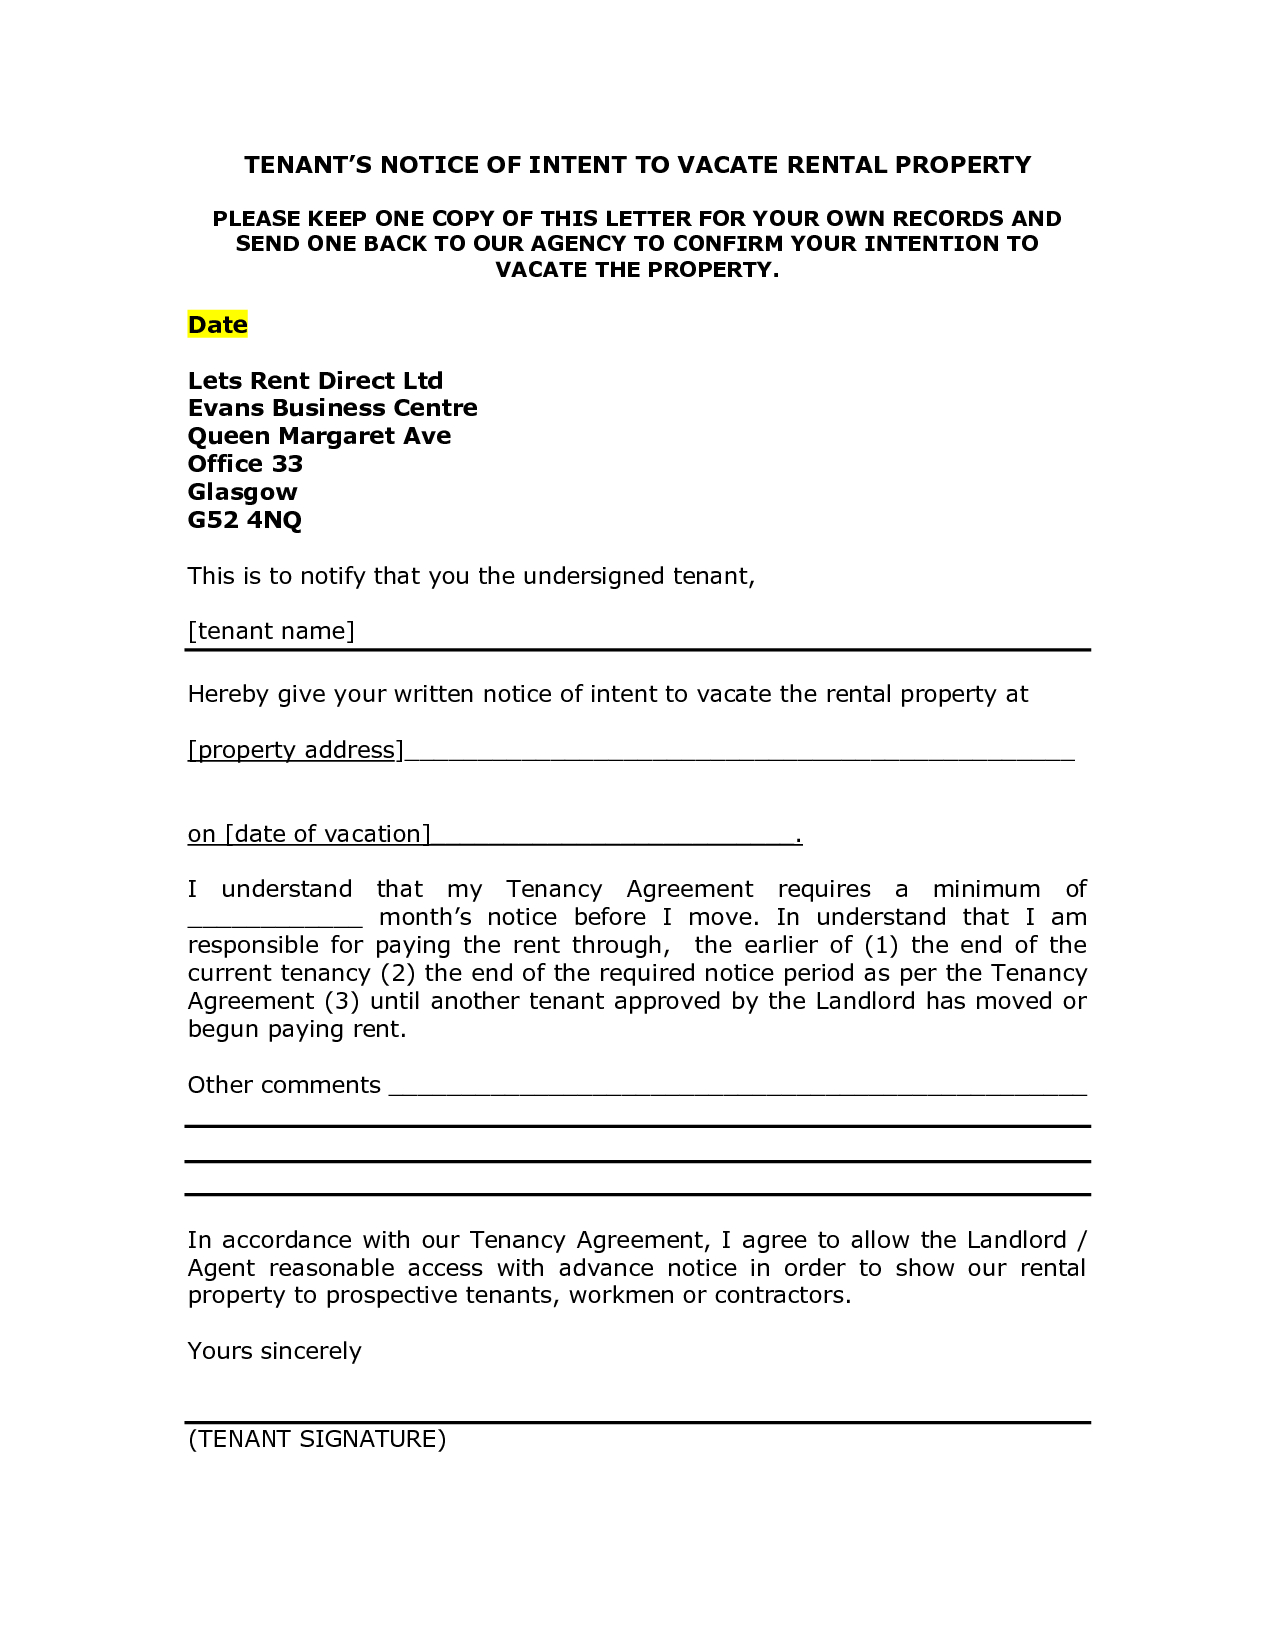 Landlord Notice Letter to Tenant Template - Notice Intent toe Rental Property Sample Letter Picture Ideas